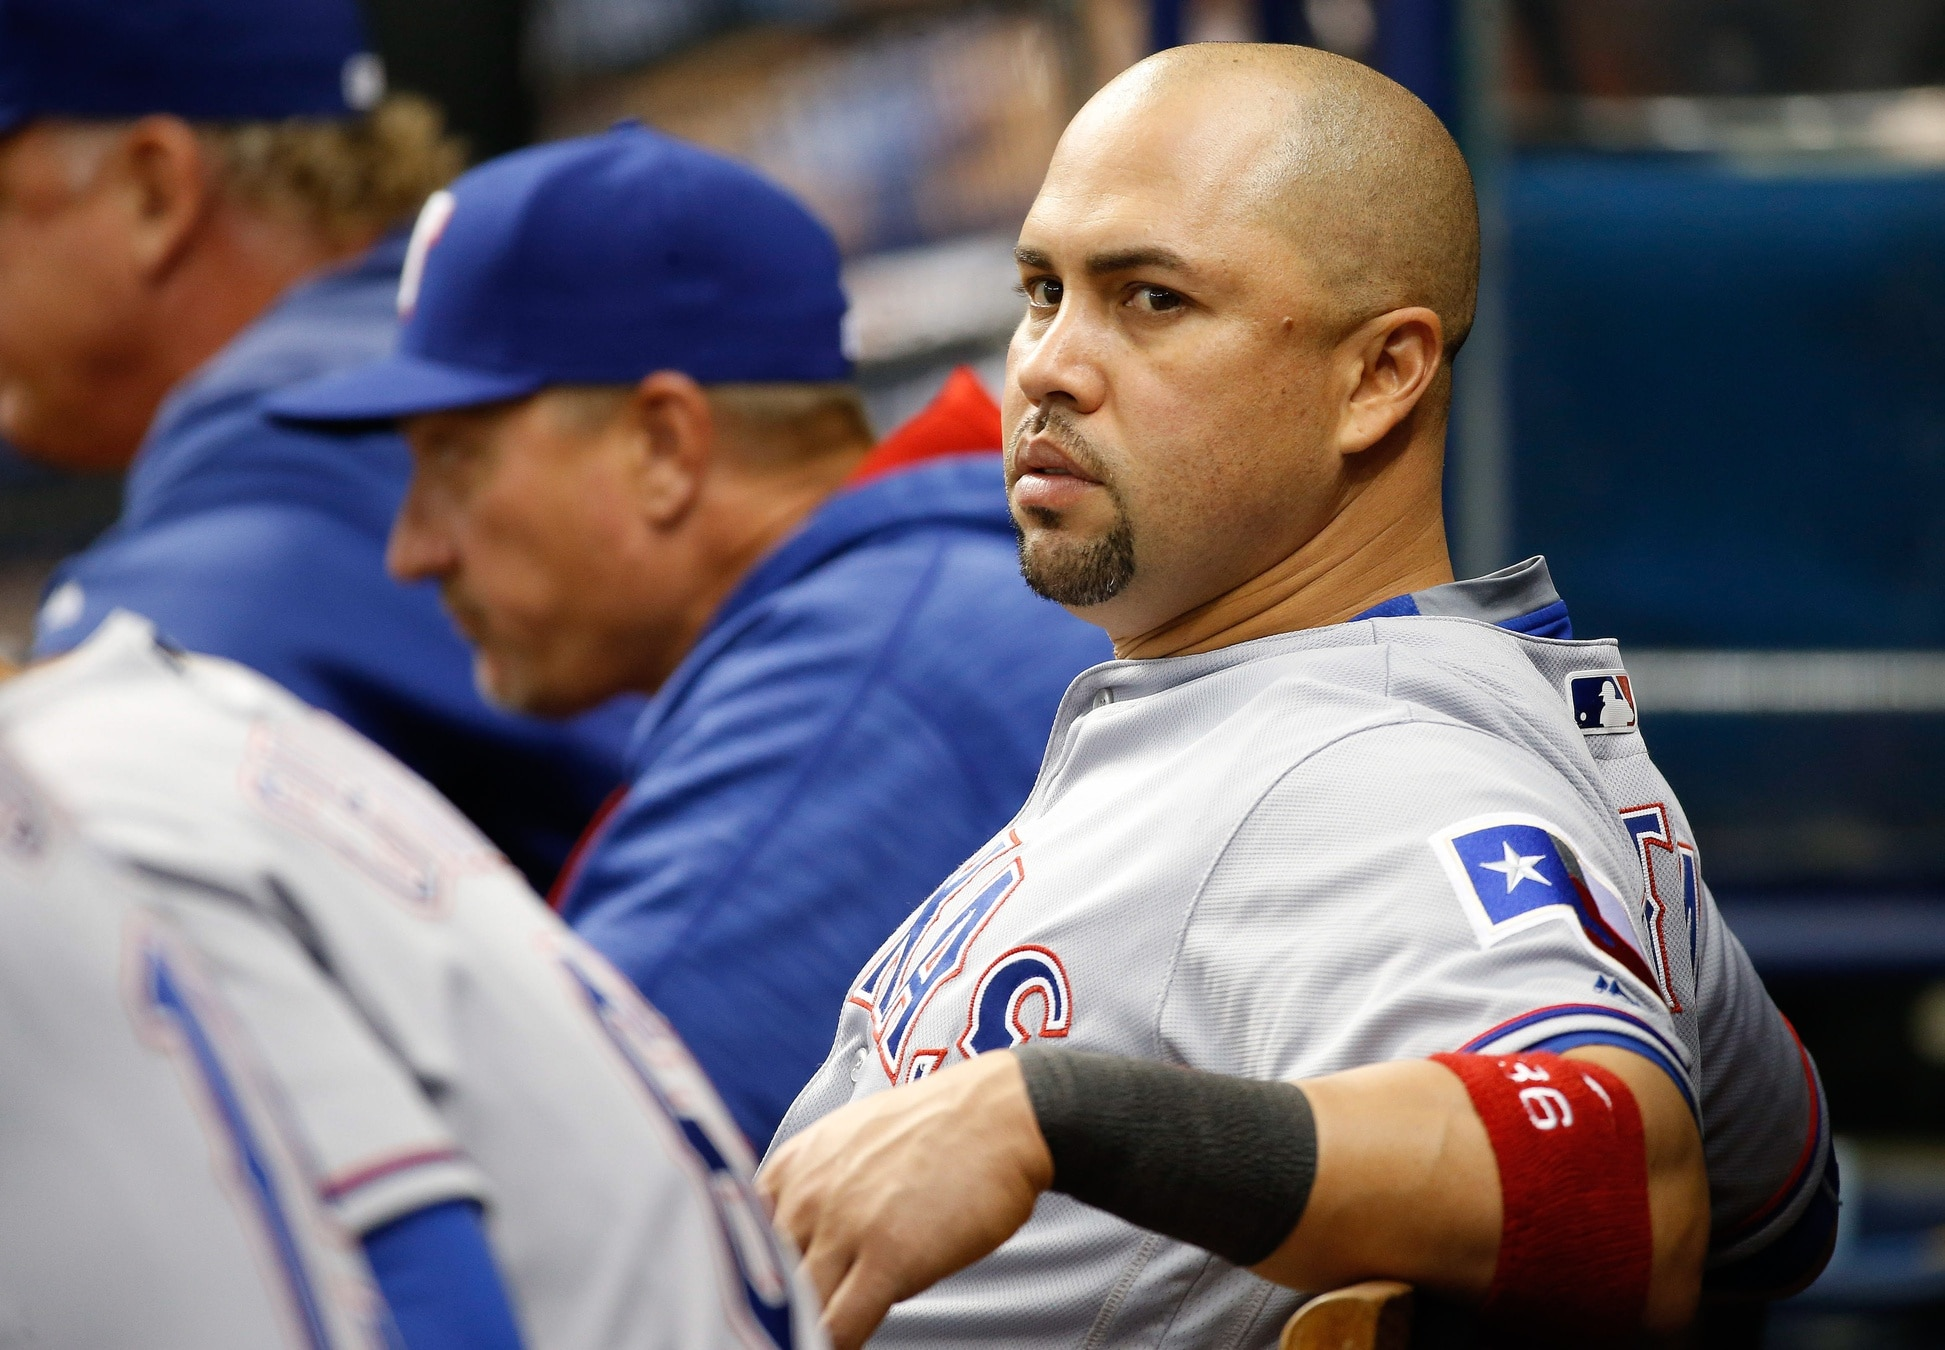 Carlos Beltran Cured His Baldness With A Magic Marker